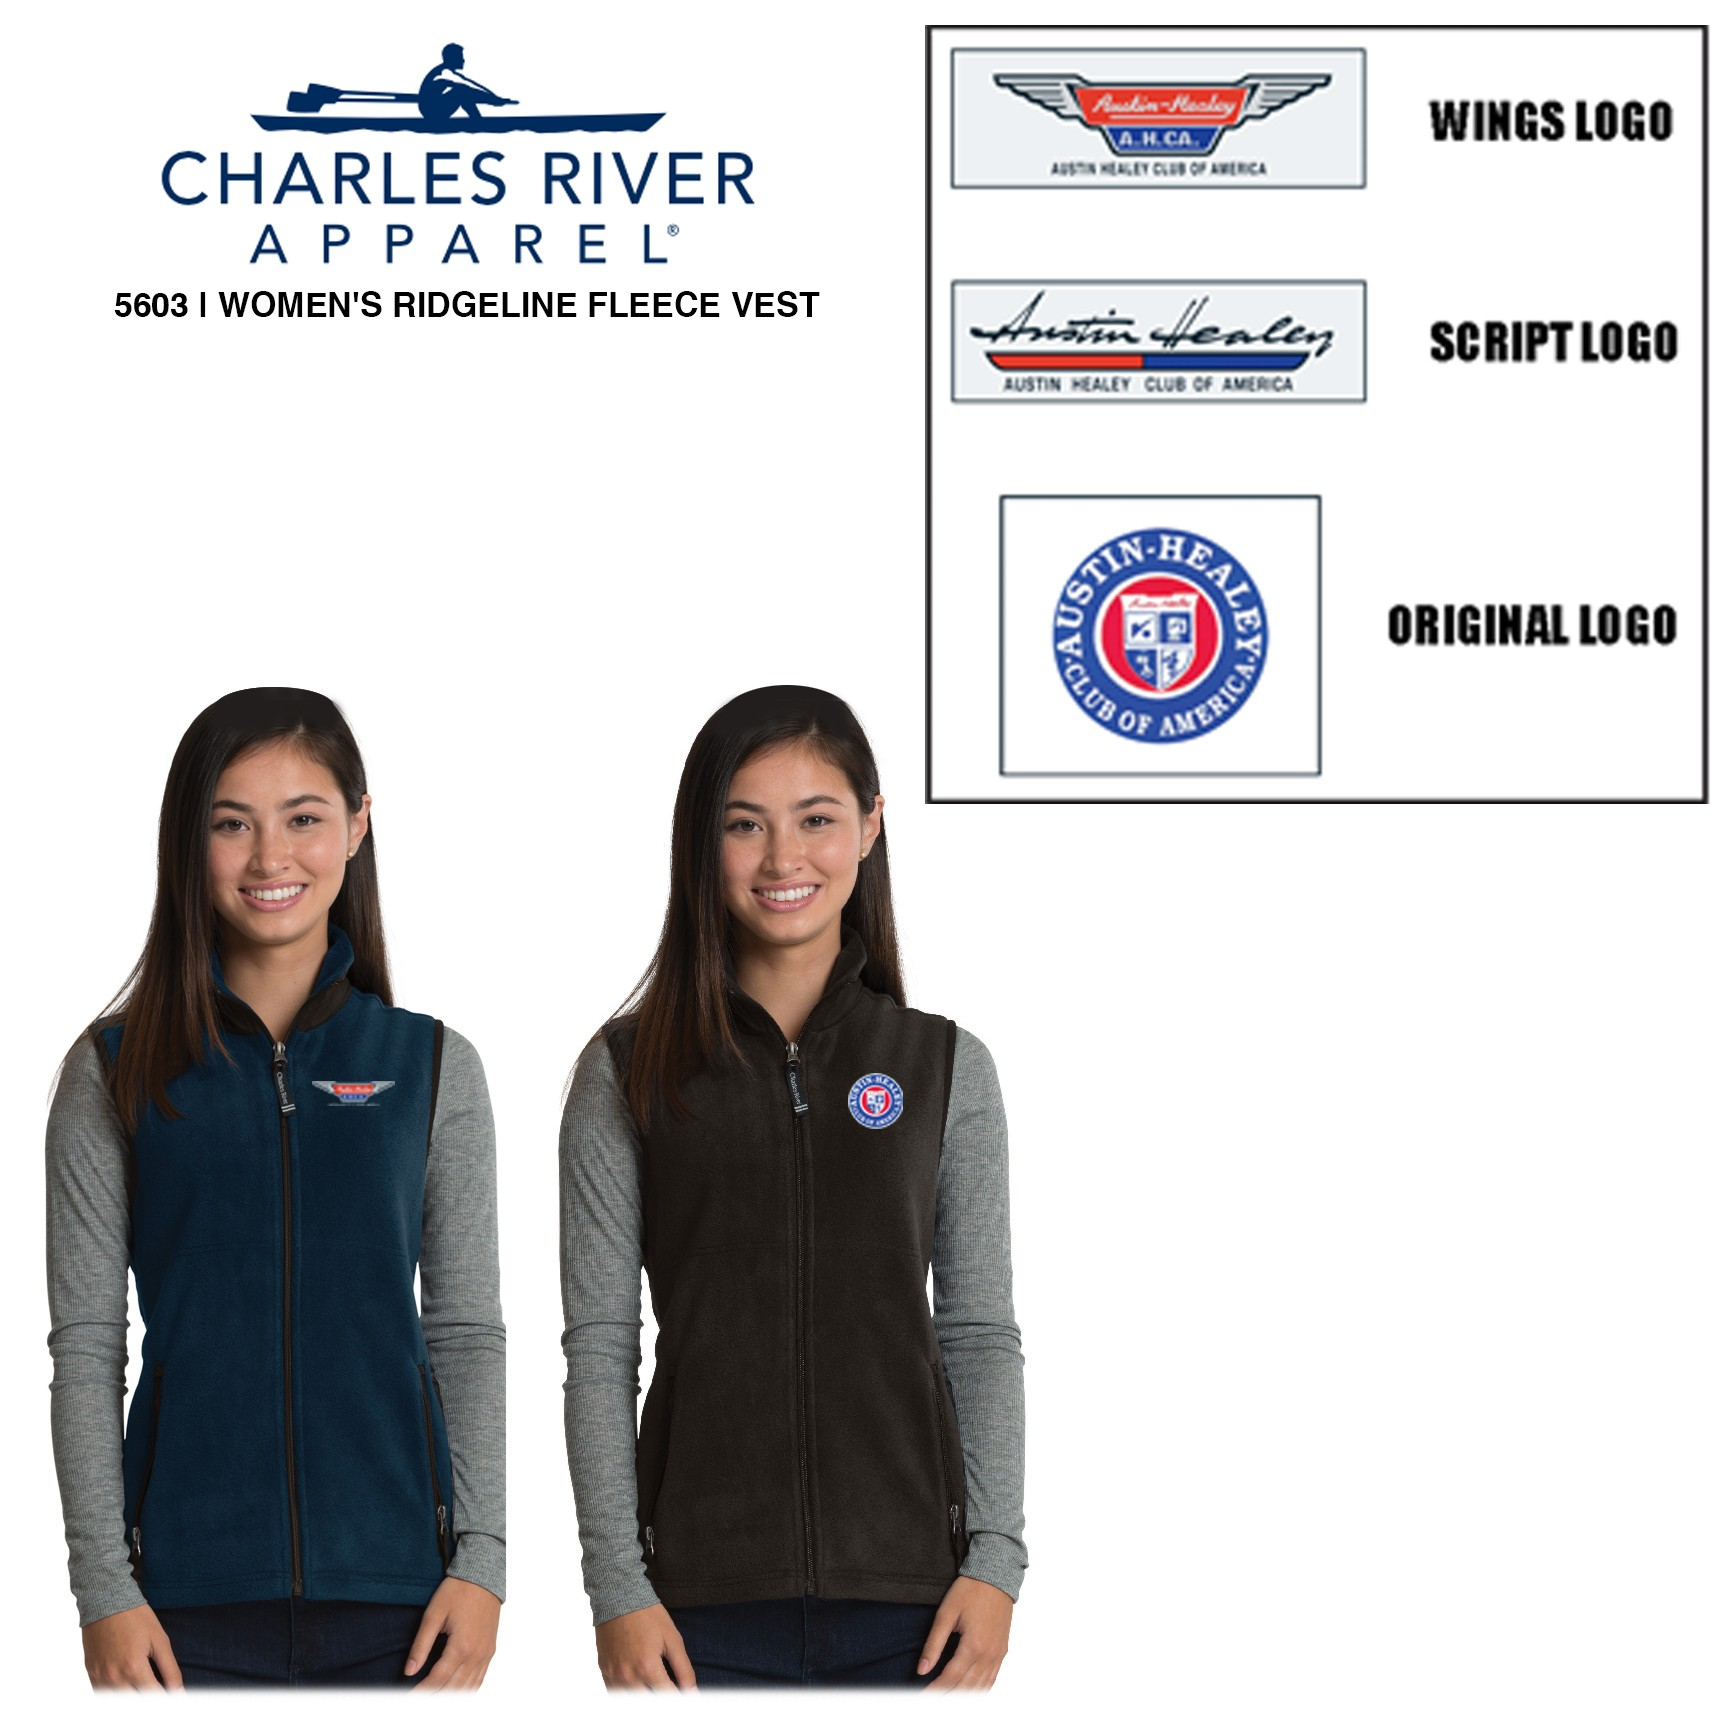 AHCA STEP- UP PROGRAM: Charles River Brand Women's Ridgeline Fleece Vest, Style #5603